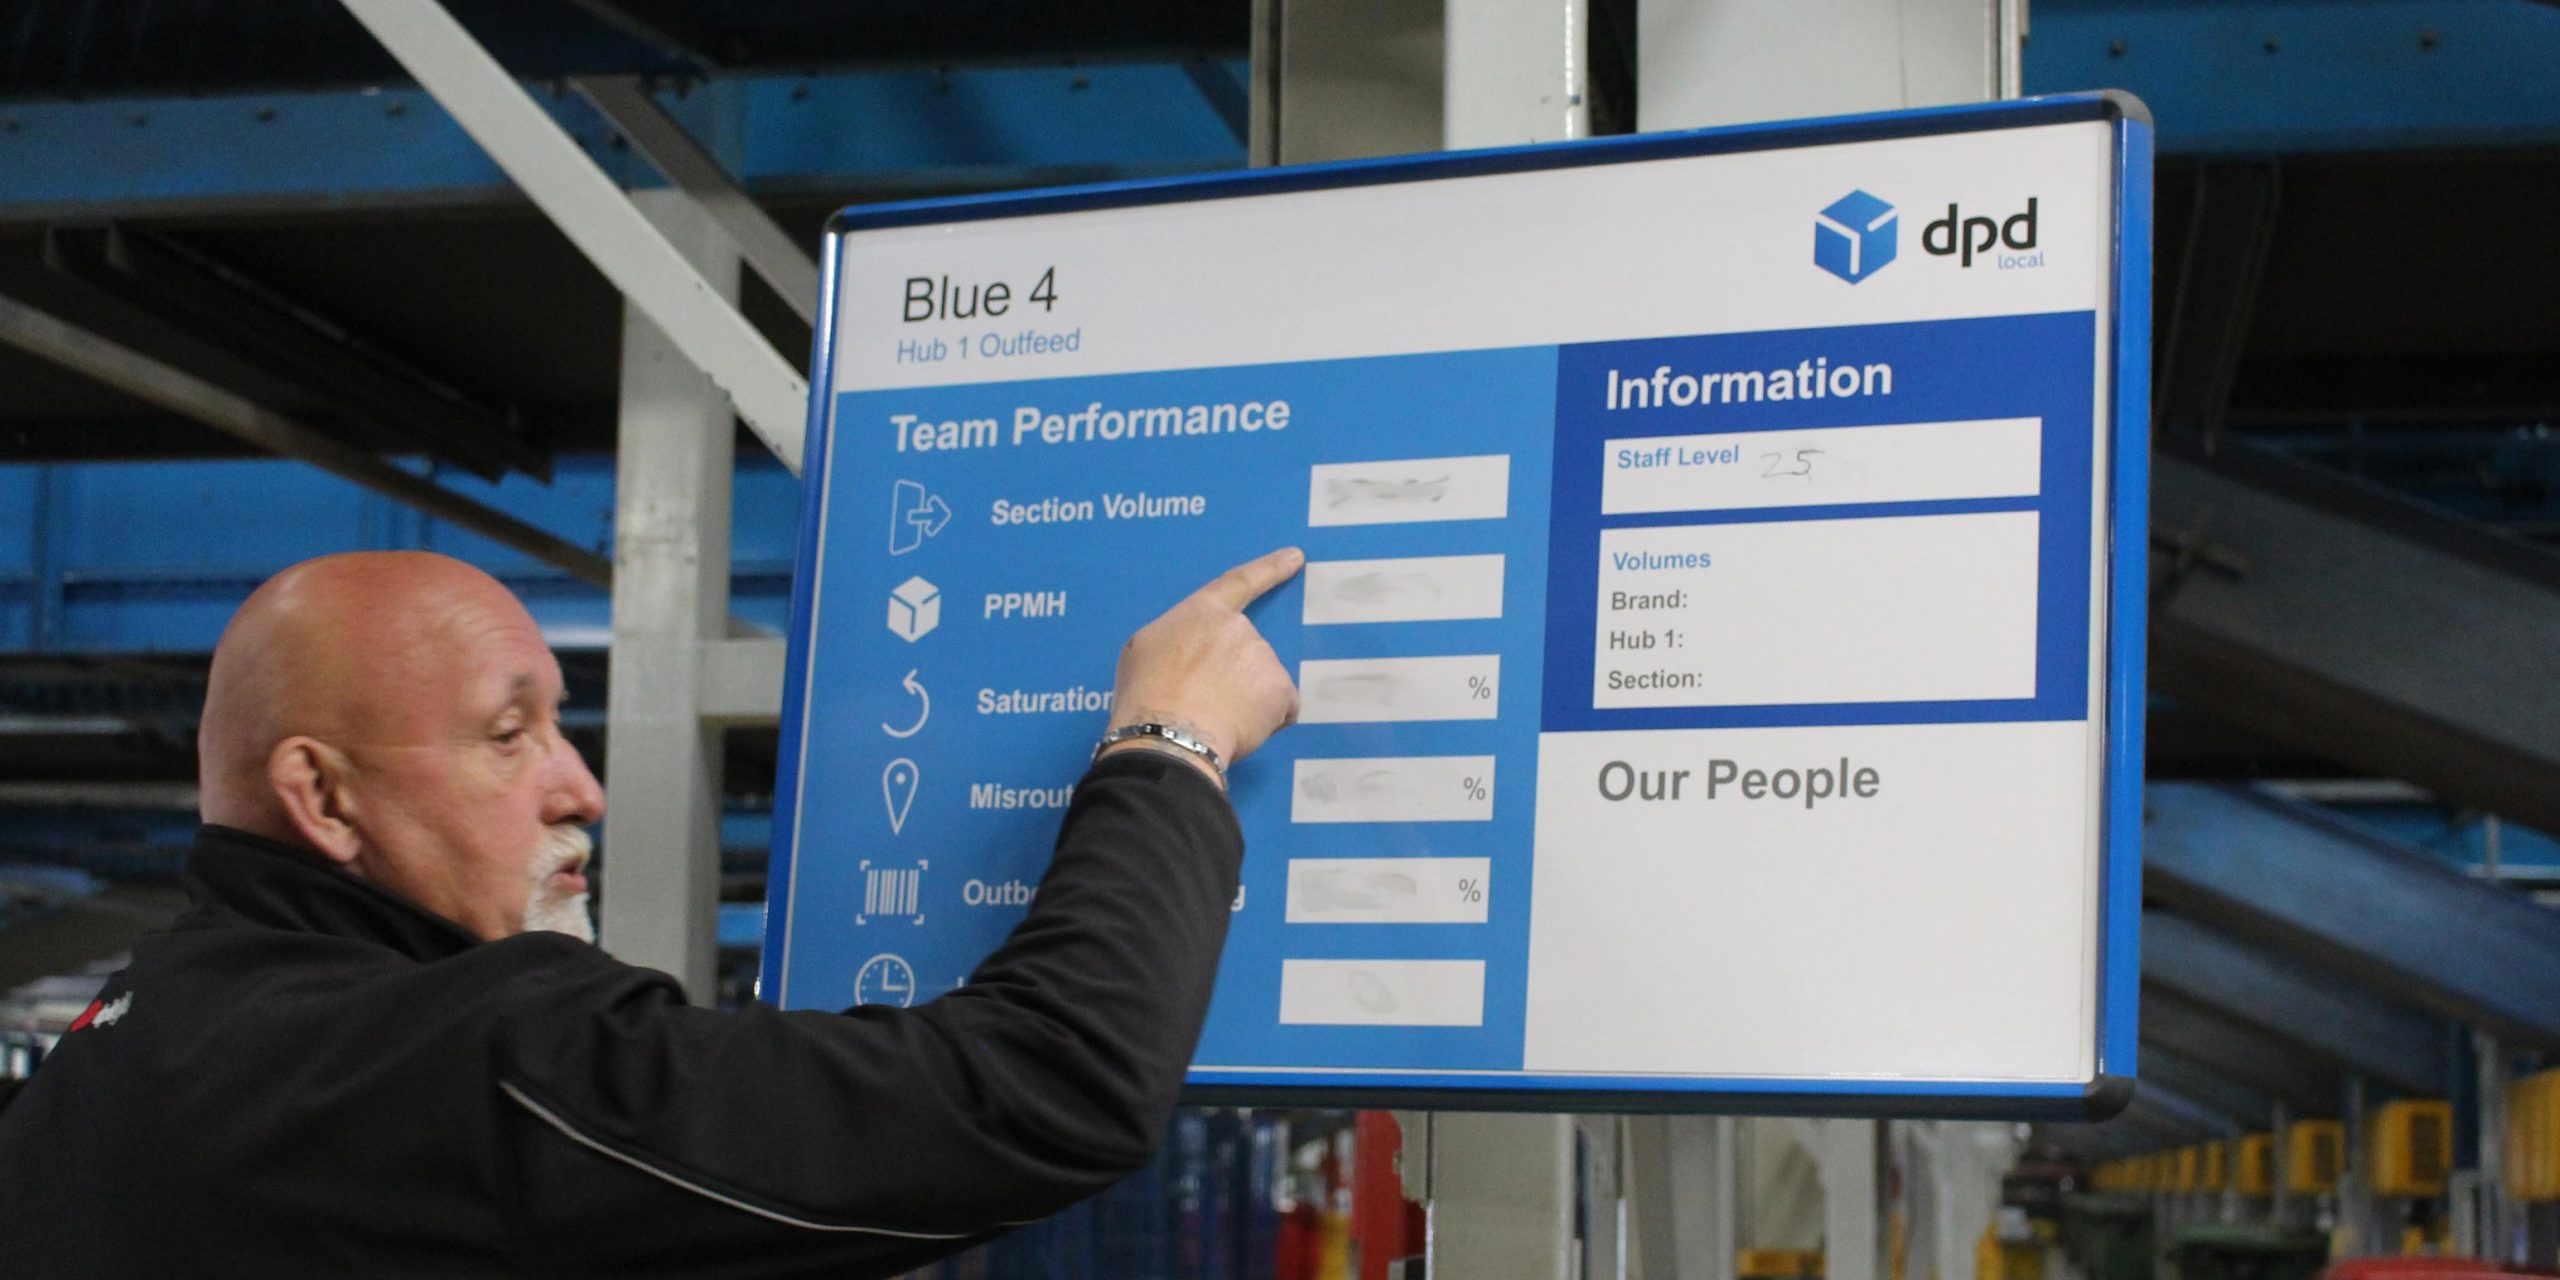 DPD Depot - Daily Performance Board - Visual Management Examples - Clarity Visual Management